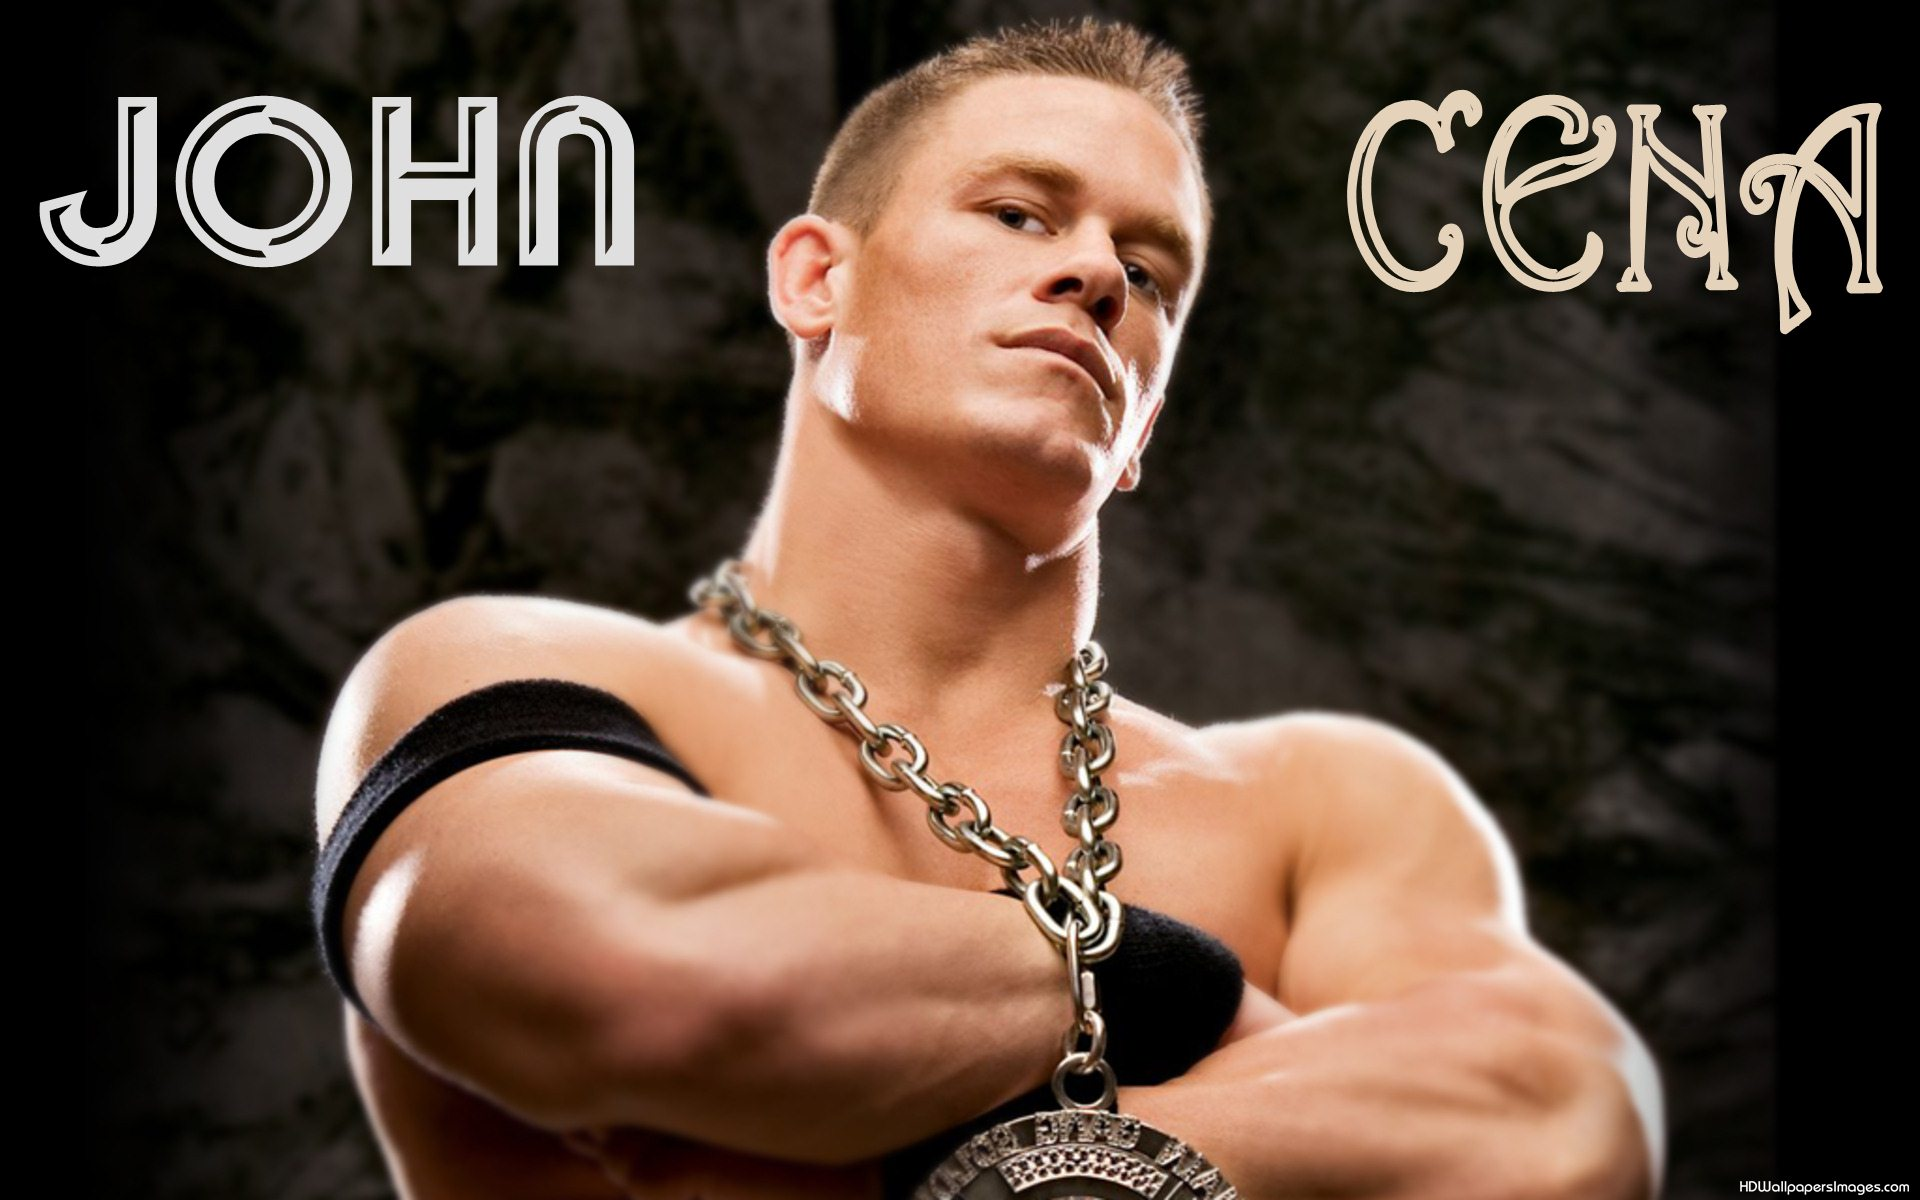 John Cena Hd Wallpapers 1024x768